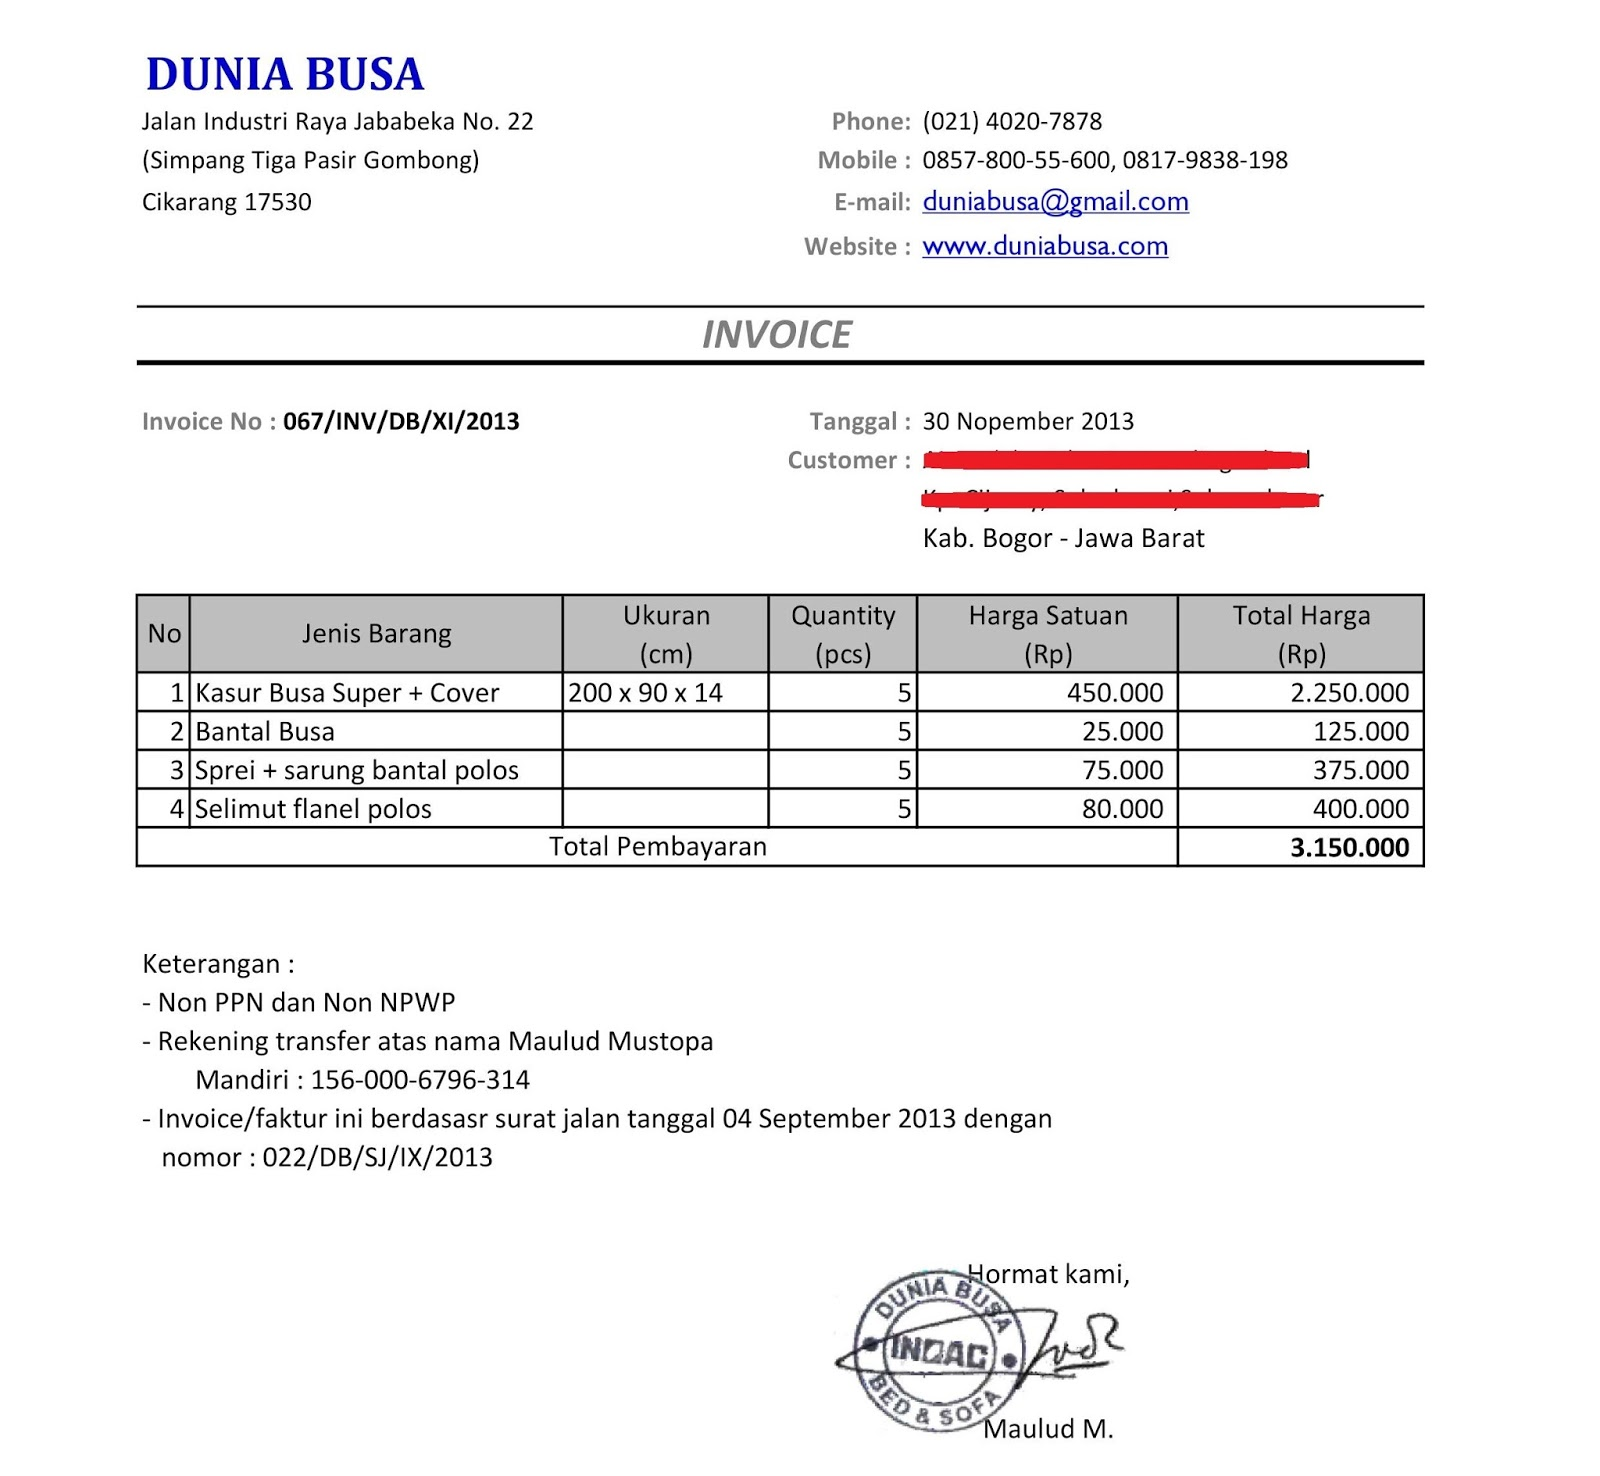 Centralasianshepherdus  Wonderful Free Invoice Online  Create Invoice Online  Invoice Template  With Glamorous Contoh Format Invoice Atau Surat Tagihan  Brankas Arsip  Free Invoice Online With Delightful Invoice System Also Microsoft Invoice In Addition Invoice Generator Software And How To Find Dealer Invoice Price As Well As Factory Invoice Vs Msrp Additionally Define Proforma Invoice From Sklepco With Centralasianshepherdus  Glamorous Free Invoice Online  Create Invoice Online  Invoice Template  With Delightful Contoh Format Invoice Atau Surat Tagihan  Brankas Arsip  Free Invoice Online And Wonderful Invoice System Also Microsoft Invoice In Addition Invoice Generator Software From Sklepco